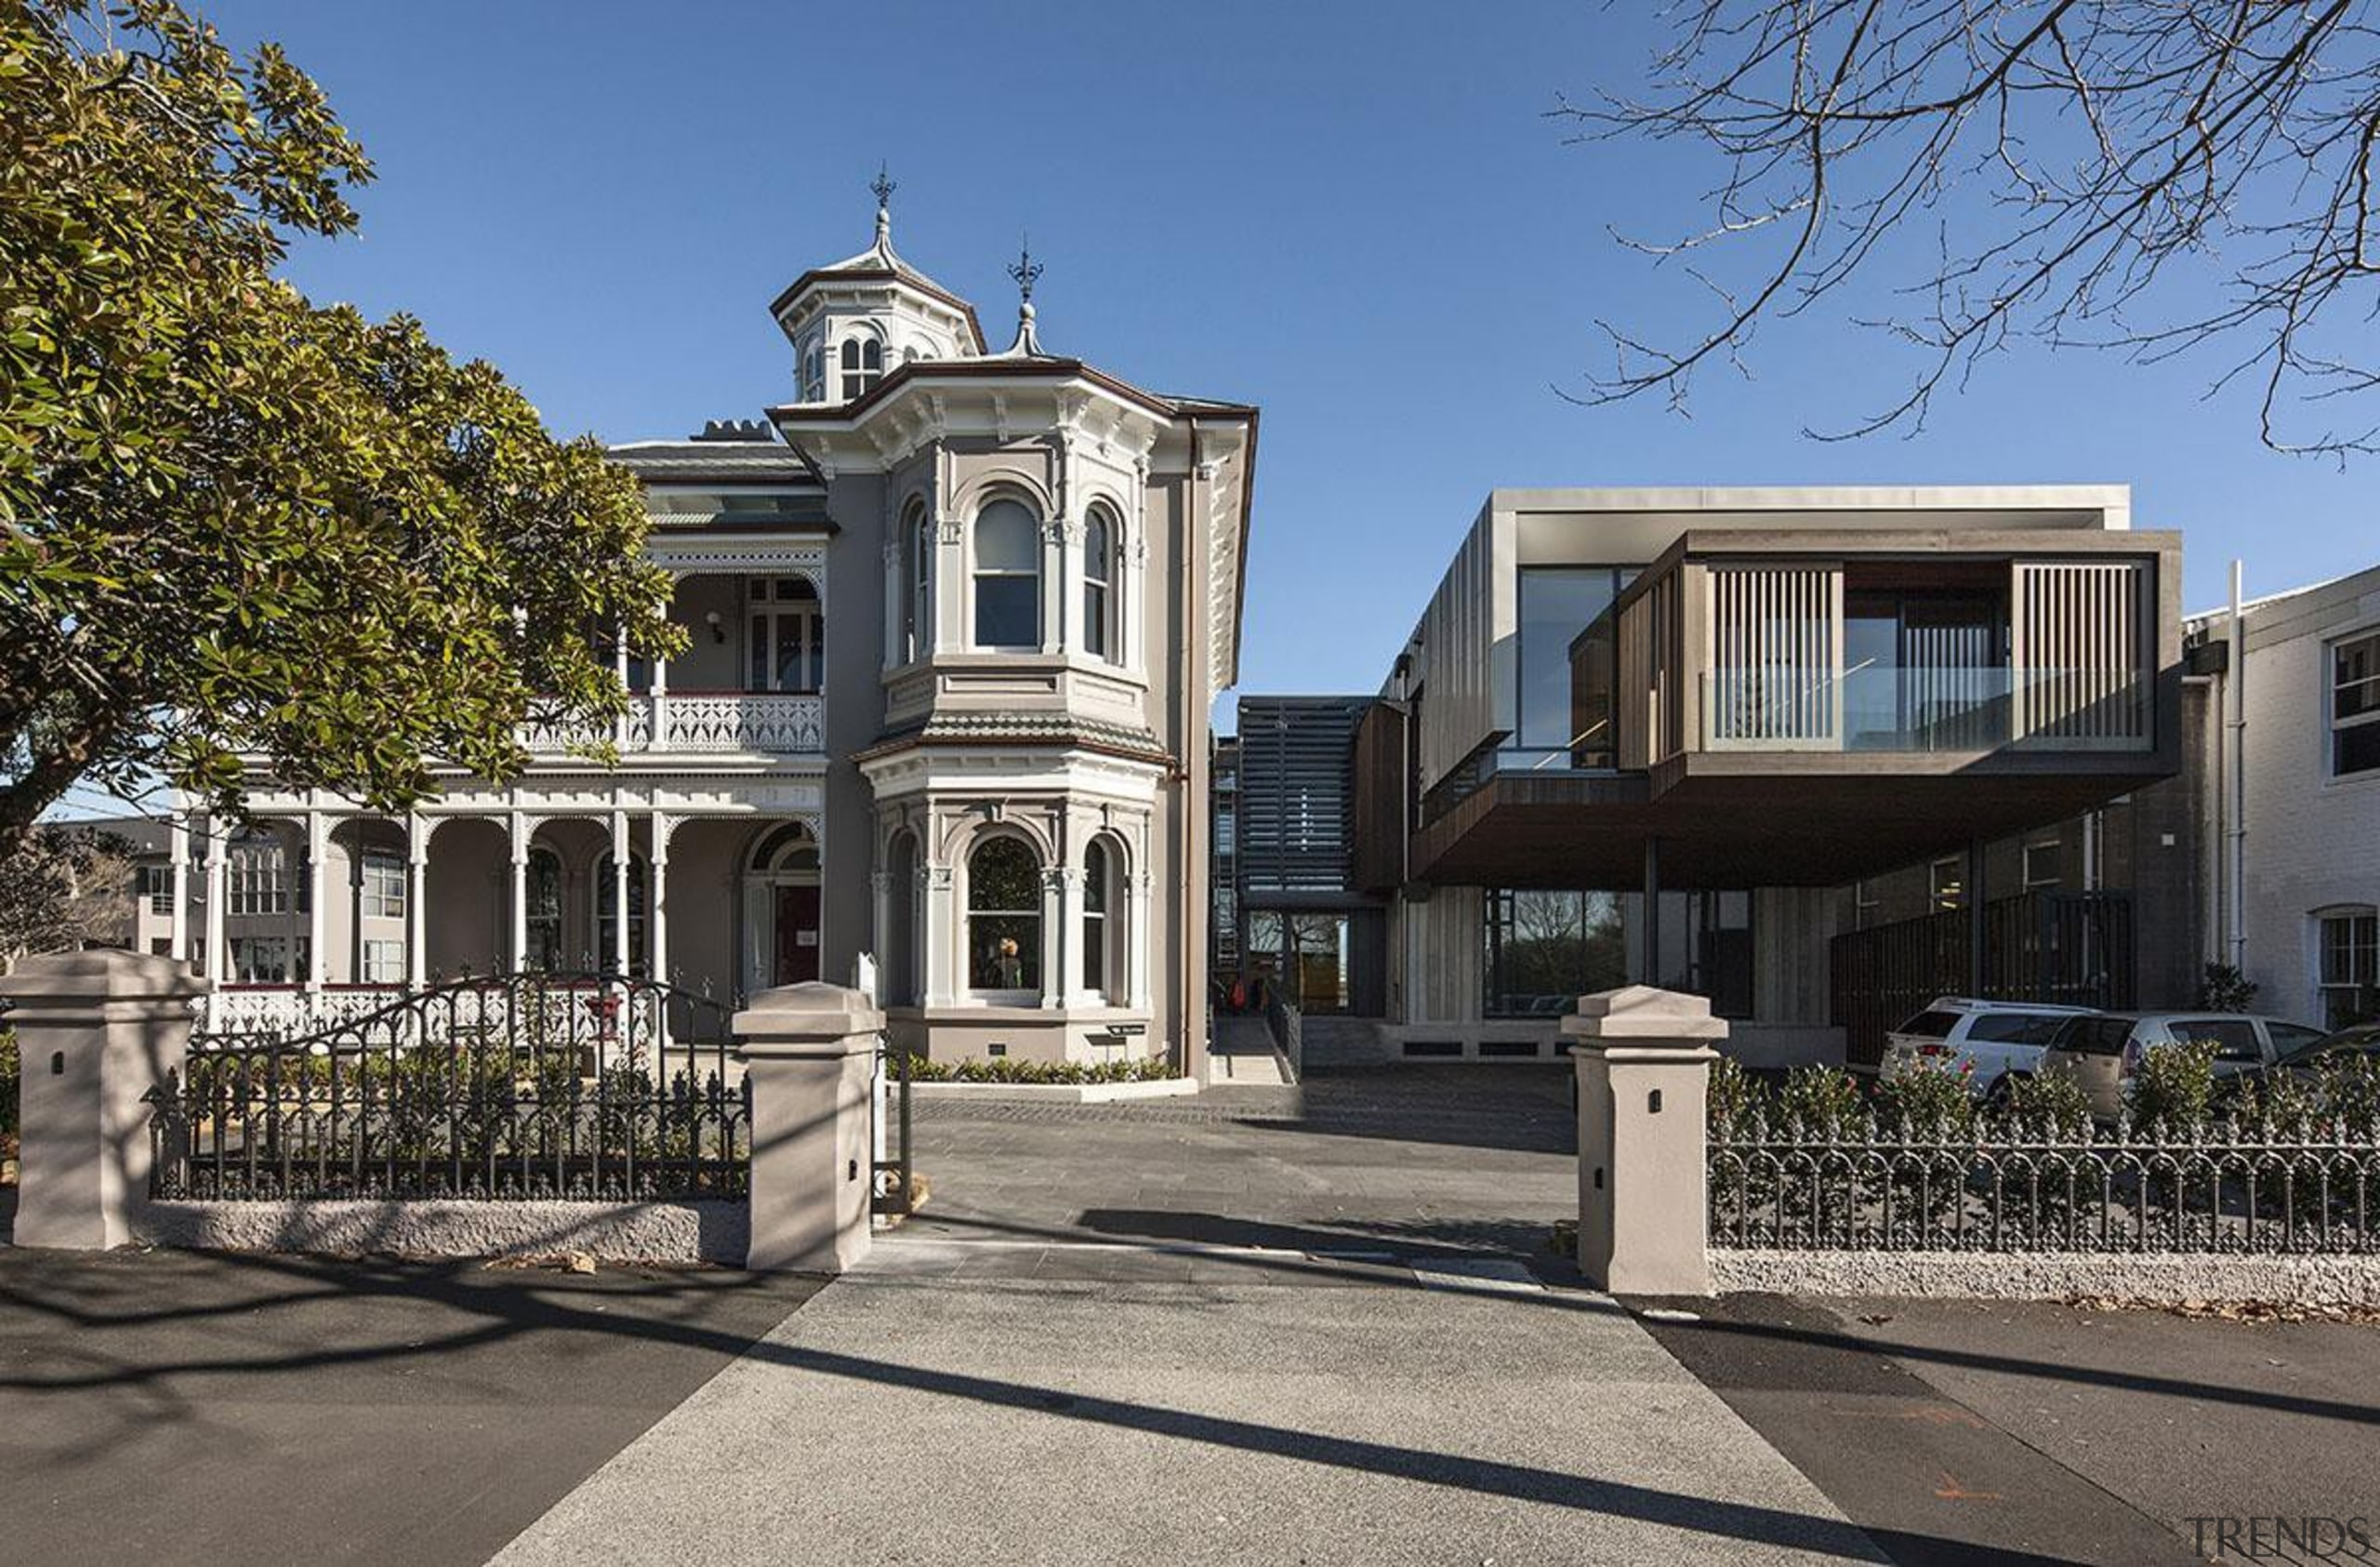 NOMINEEAllendale House and Annexe (1 of 4) - architecture, building, estate, facade, historic house, home, house, landmark, mansion, neighbourhood, property, real estate, residential area, sky, tree, villa, window, gray, black